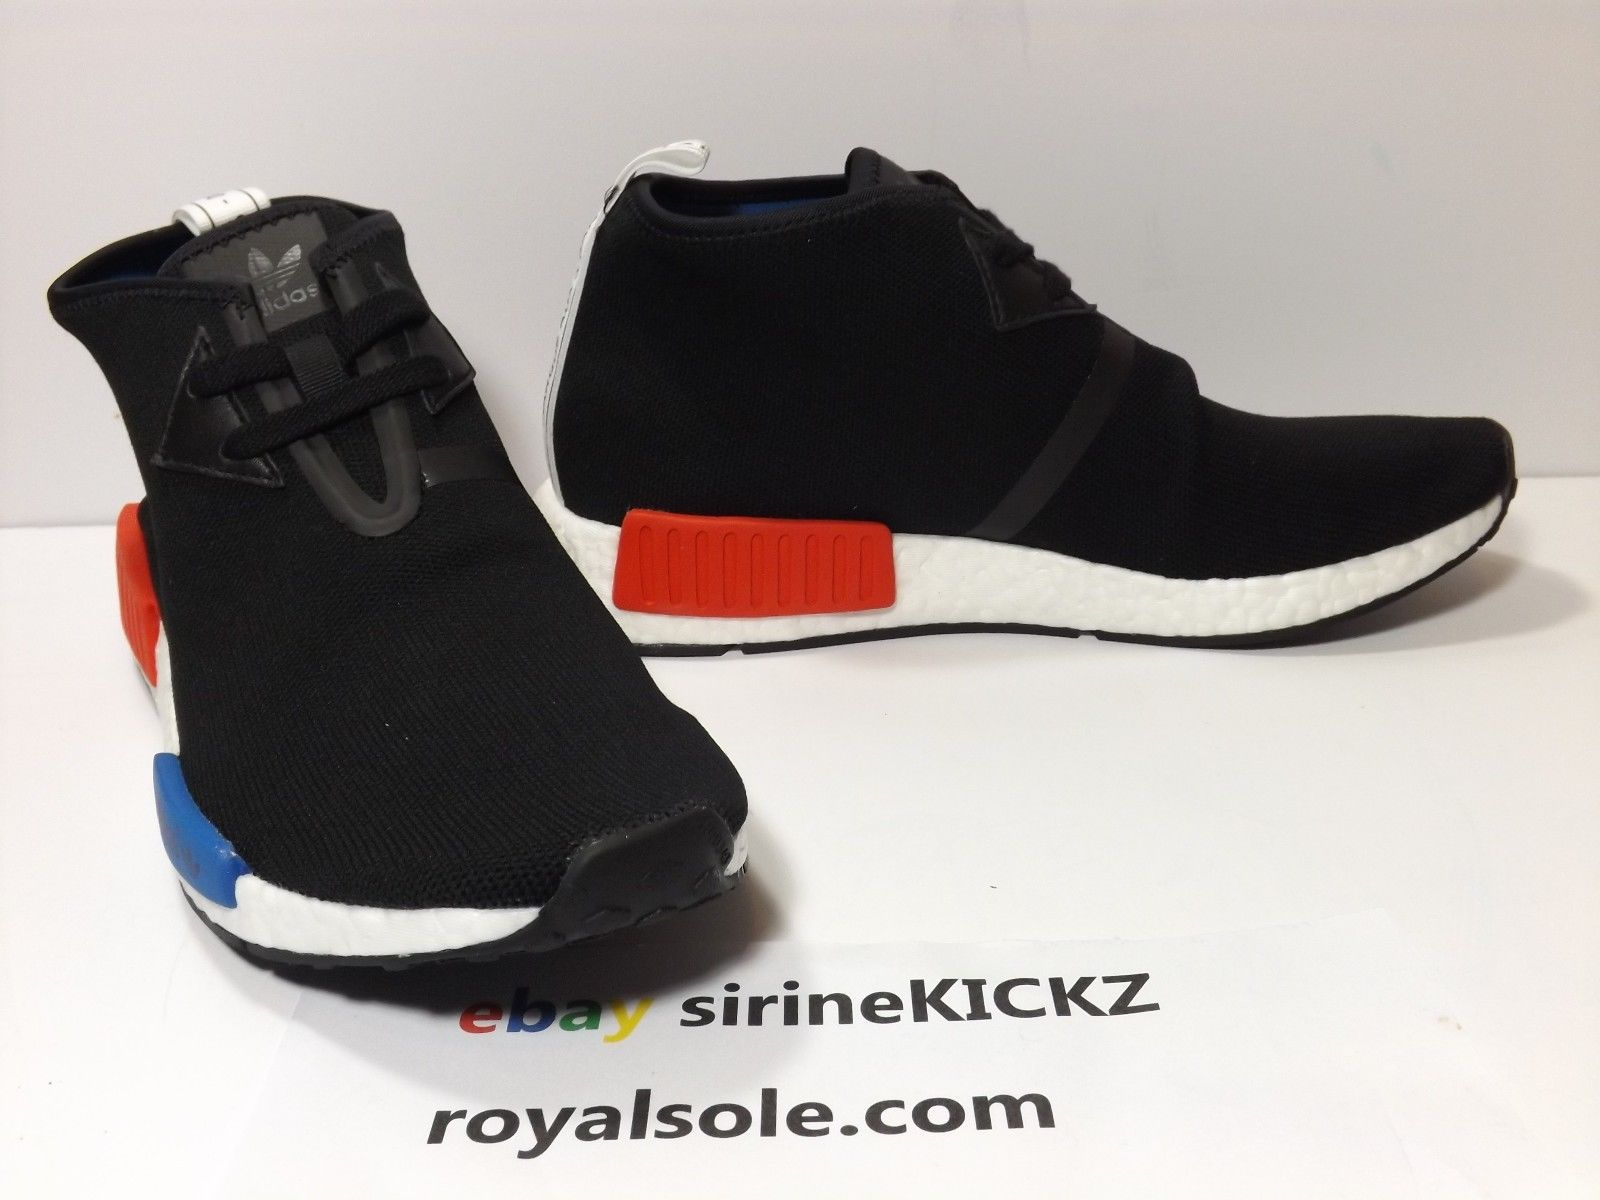 newest 1e392 0284d Adidas NMD C1 Chukka Core Black Red Lush Blue S79148